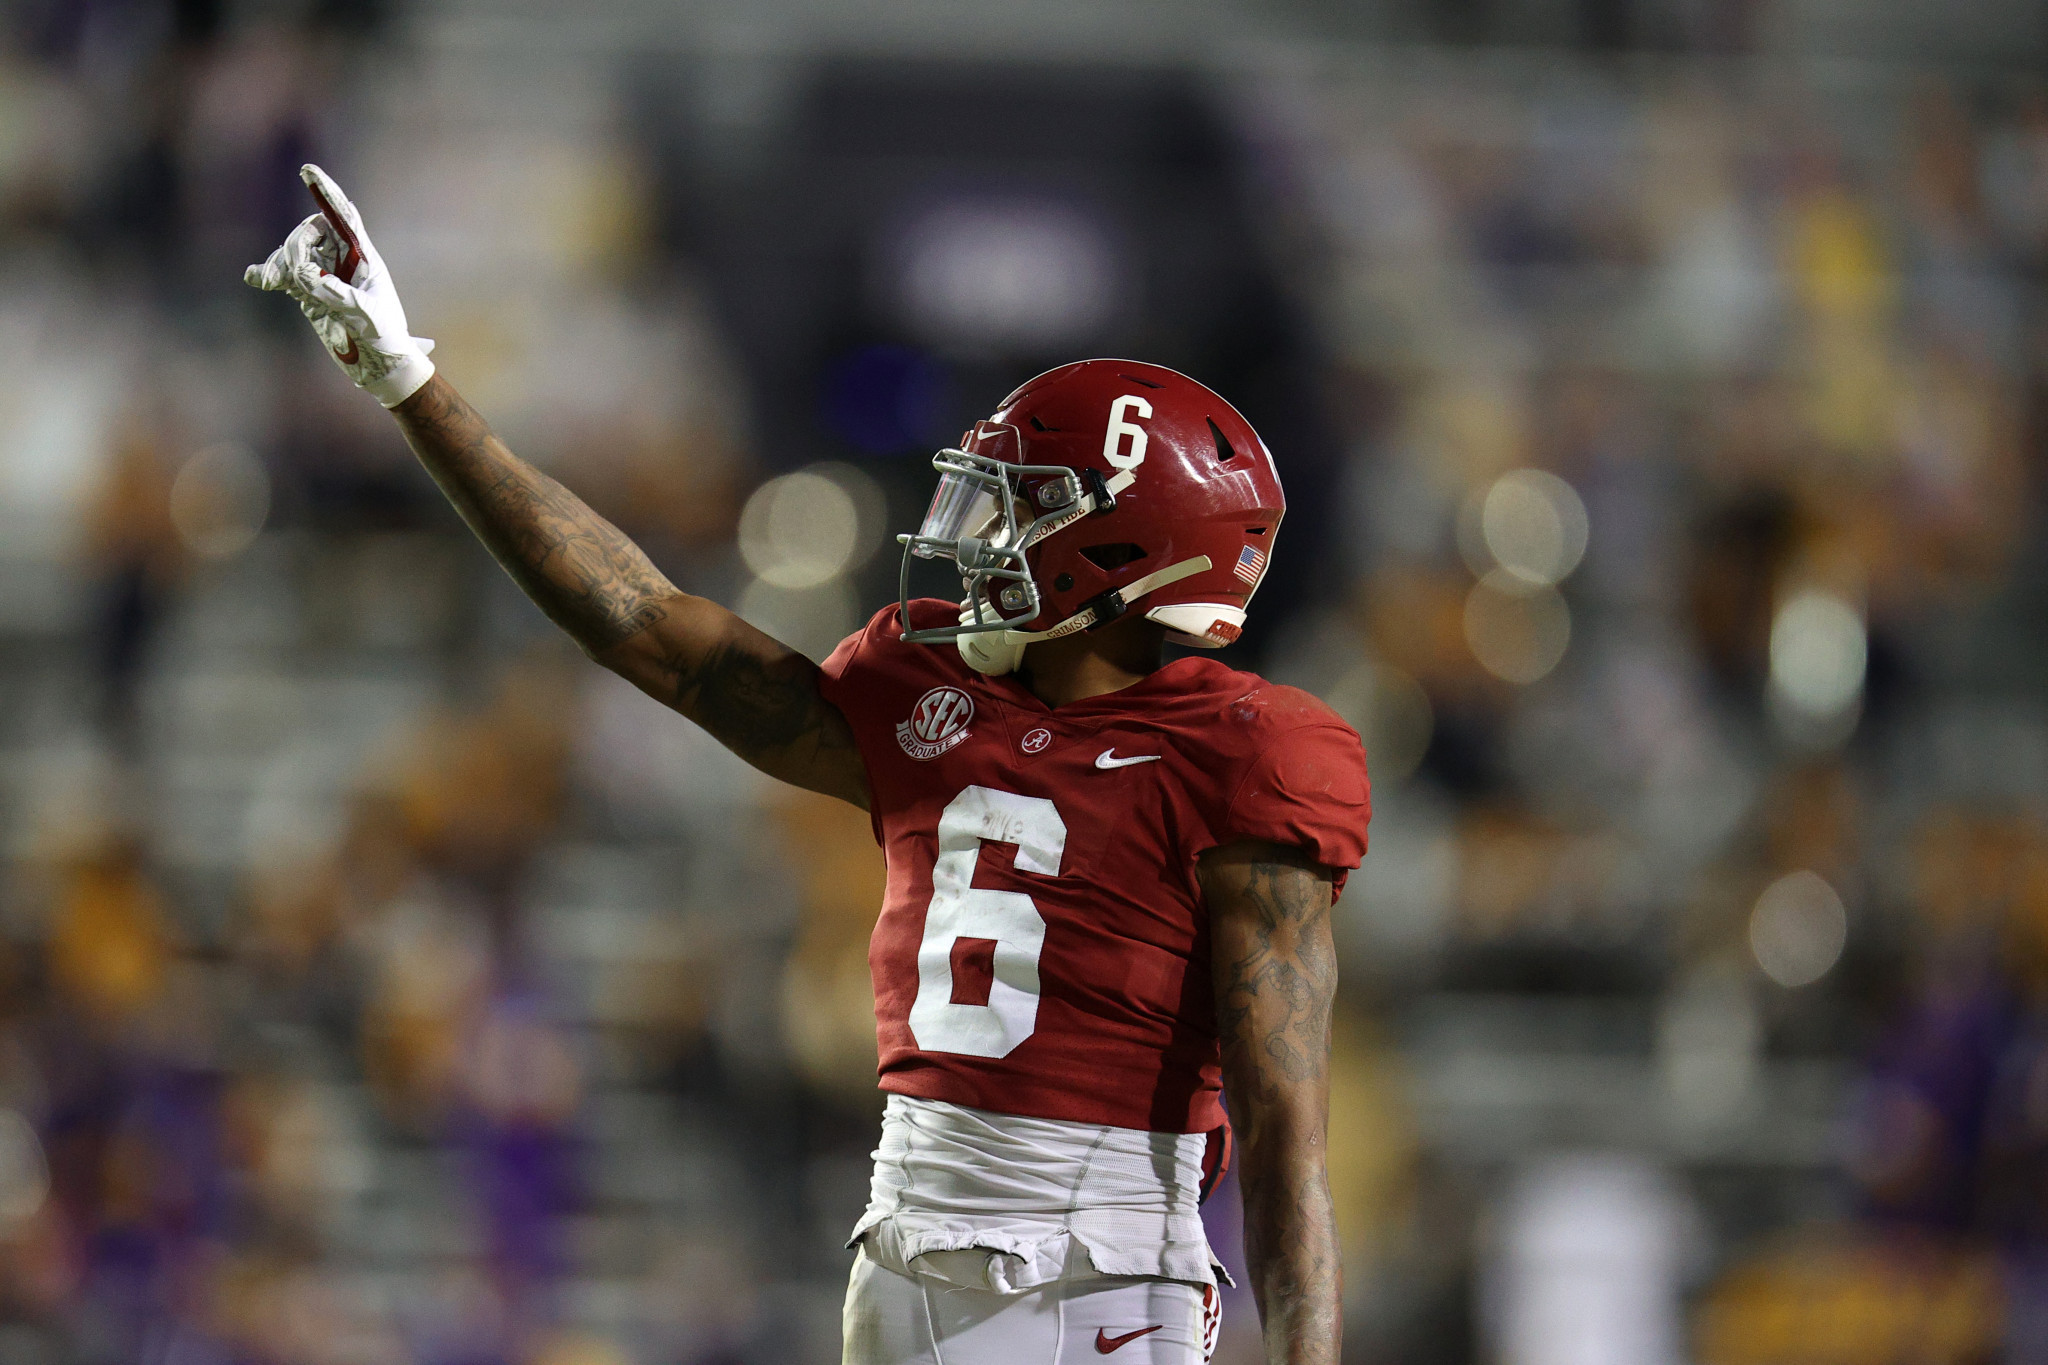 Heisman finalists: Tide teammates plus Lawrence and Trask